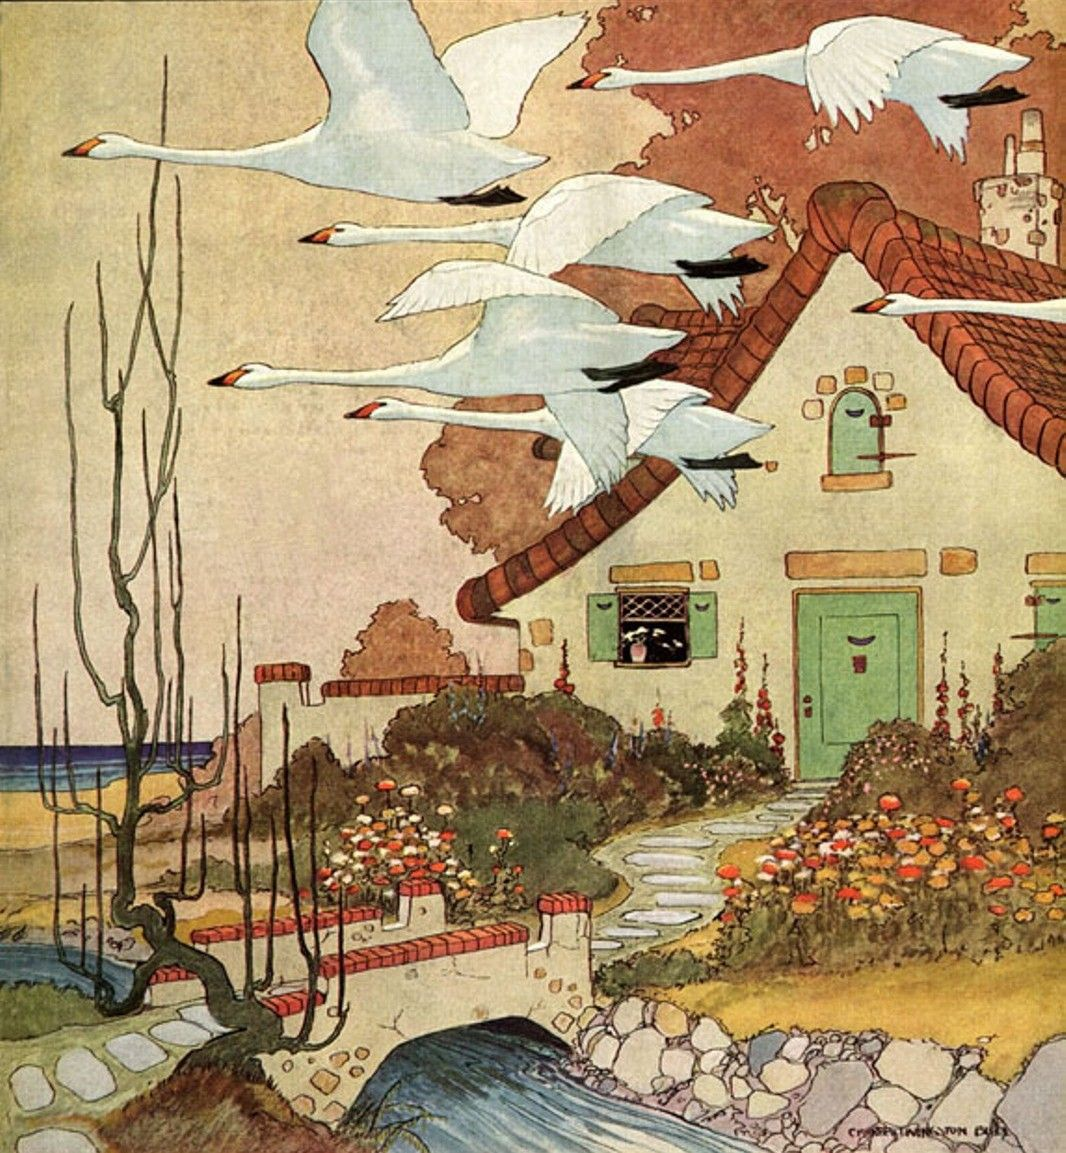 house garden 1920s repinned from vintage magazine covers by lisa